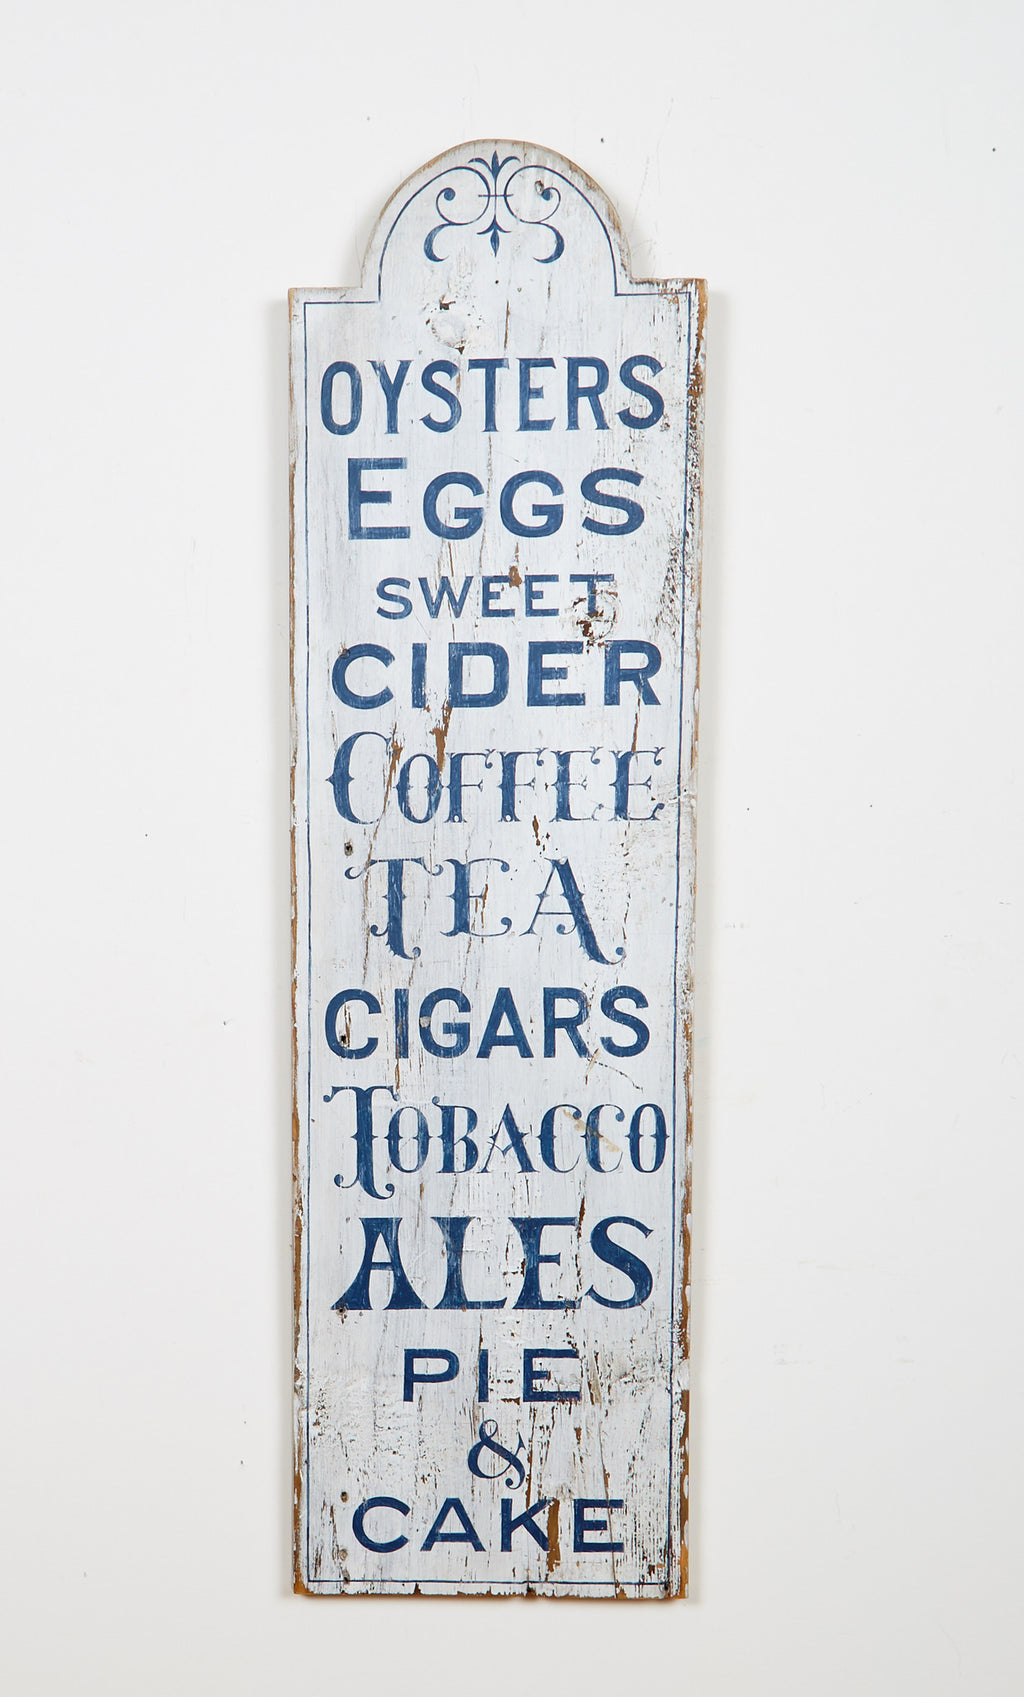 Oysters, Eggs, Sweet Cider, Vertical Americana Art